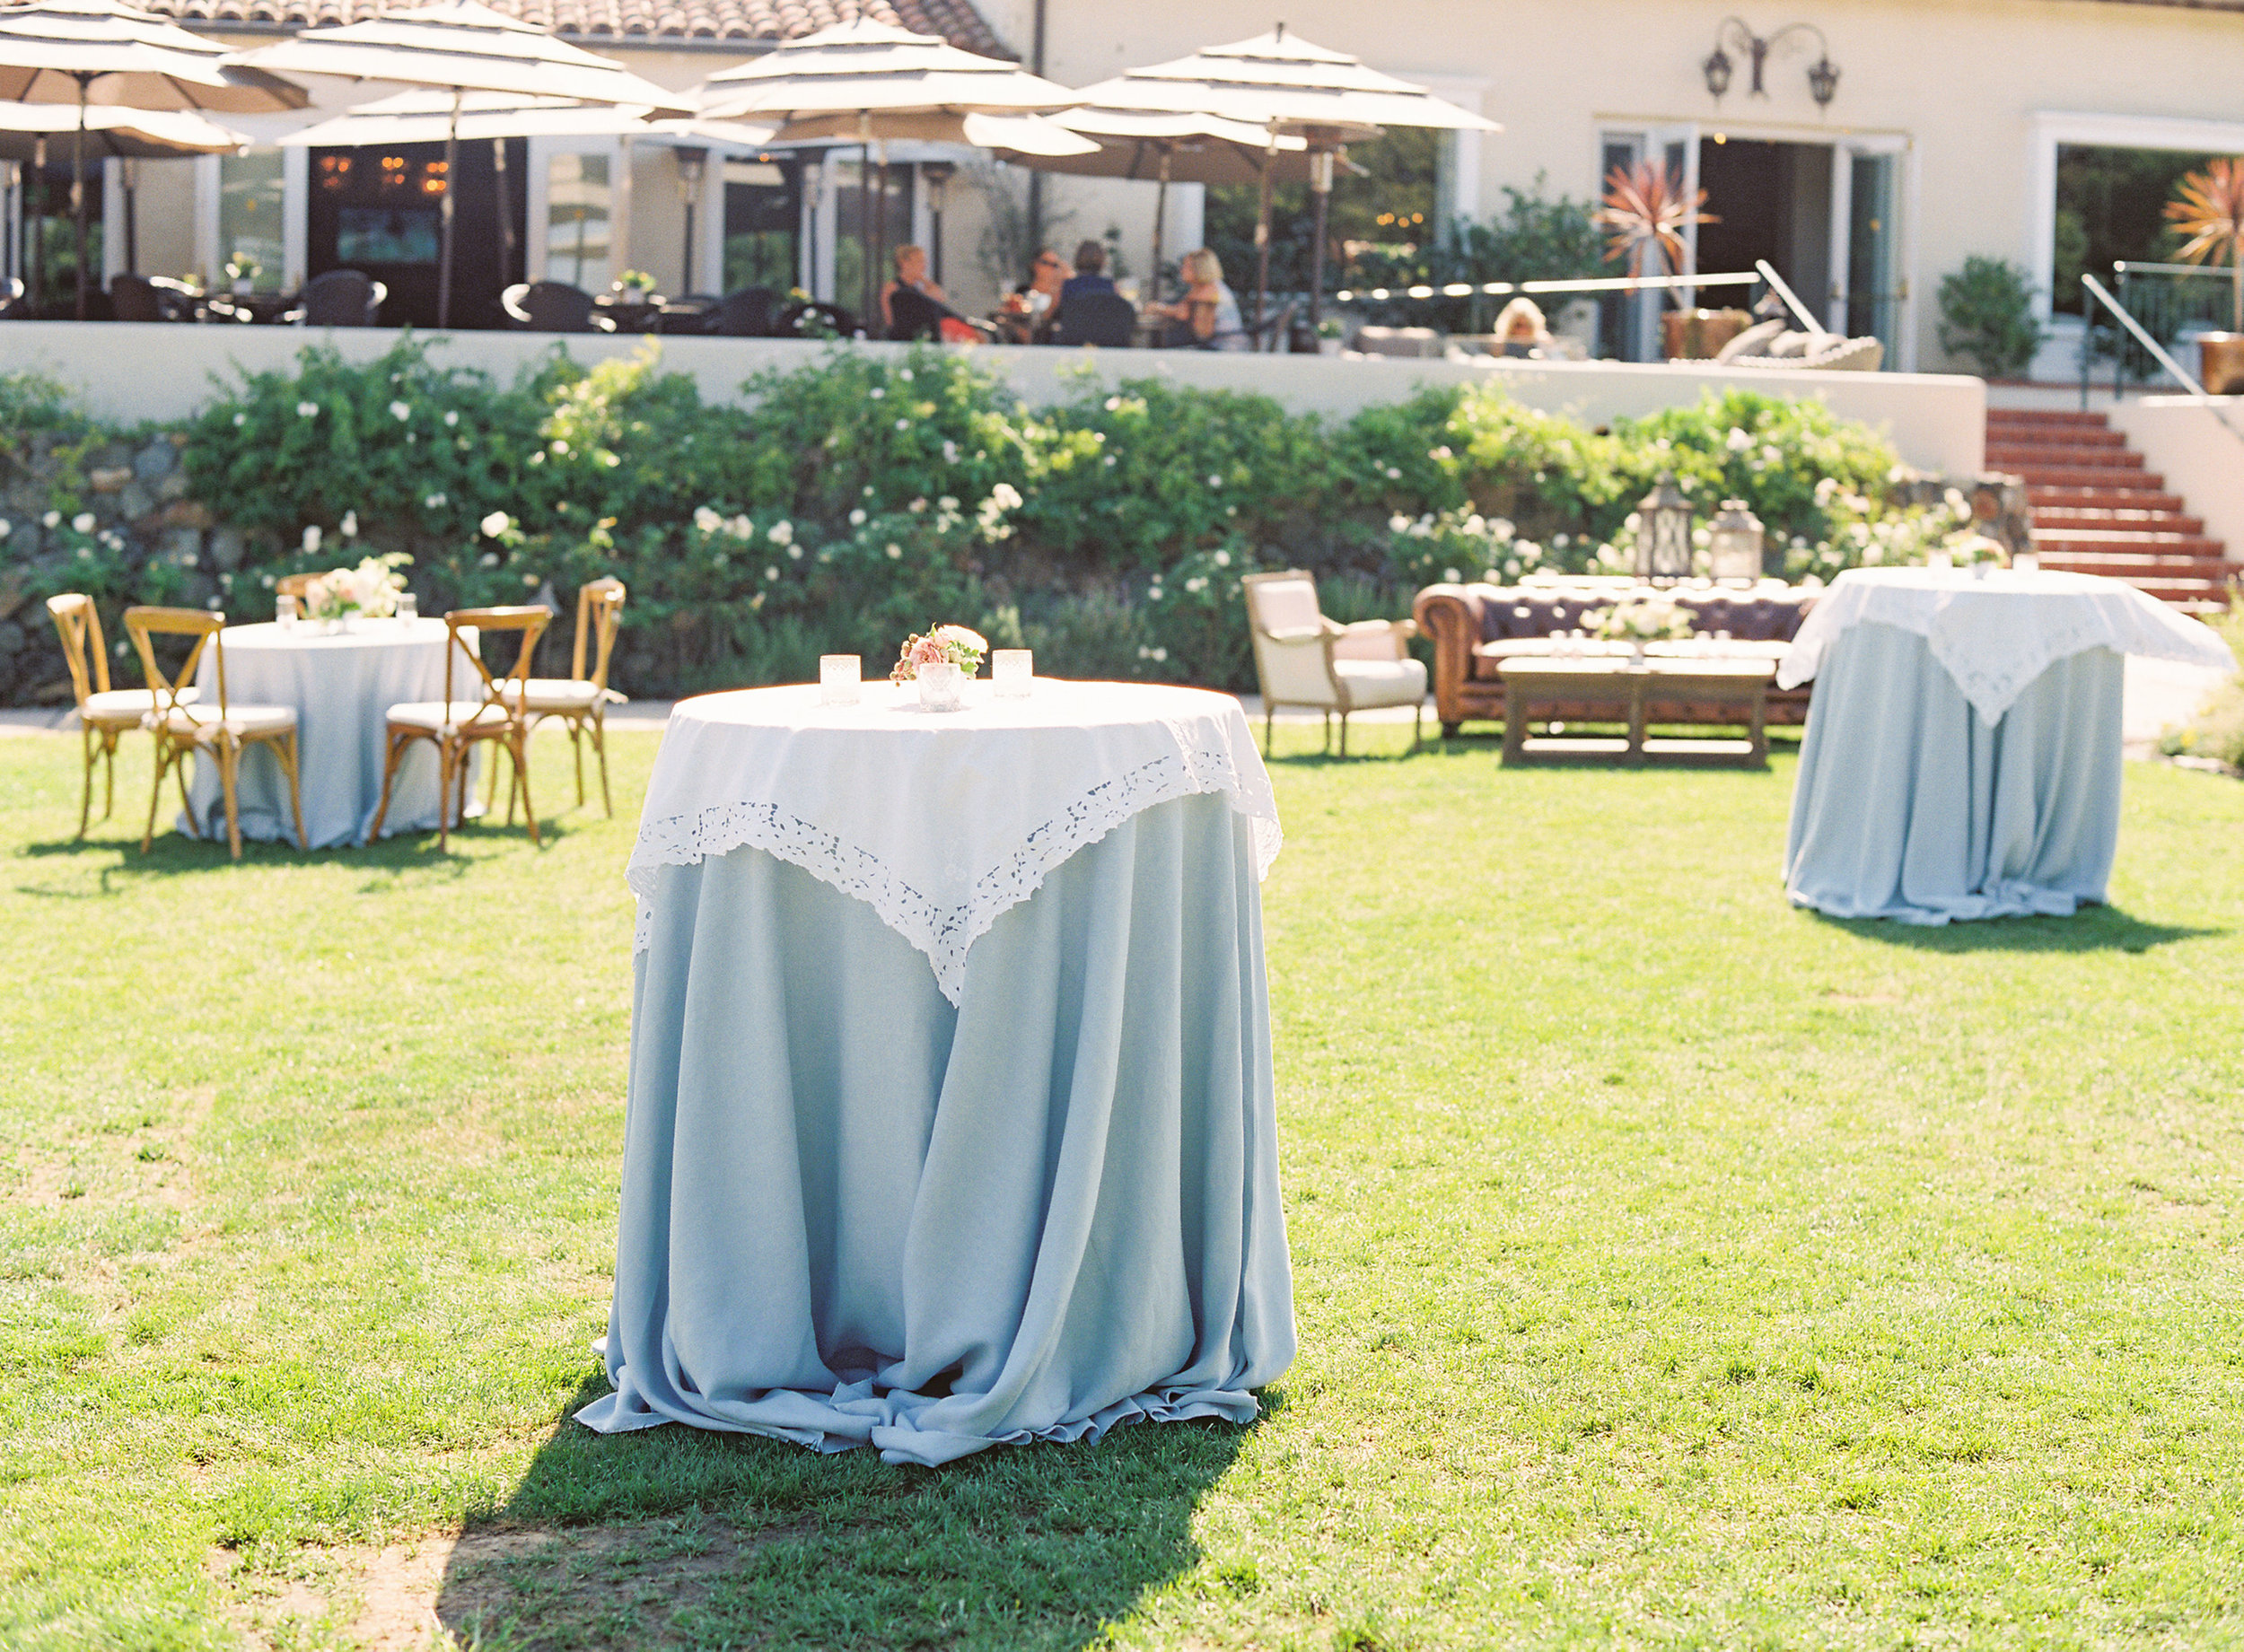 Inn-at-Rancho-Santa-Fe-Wedding-406.jpg